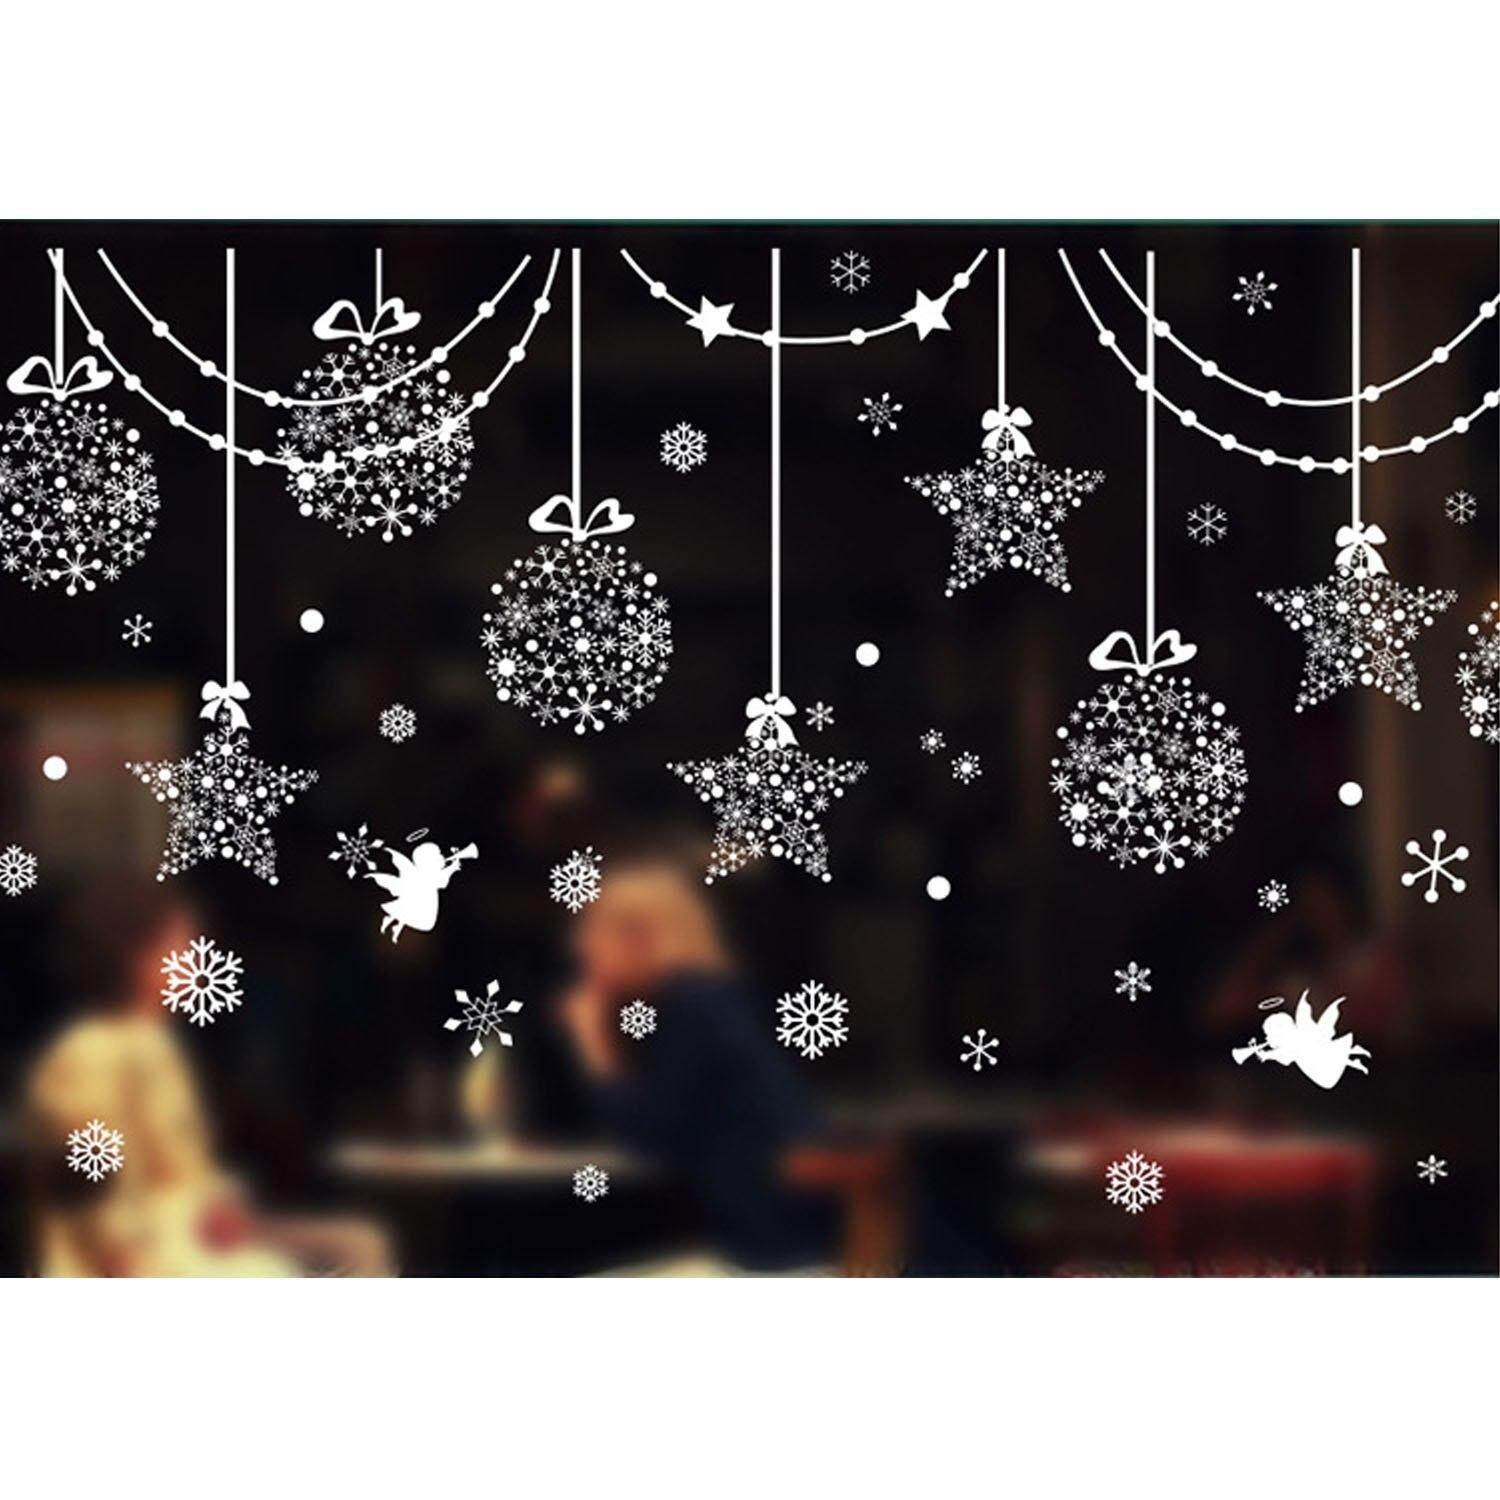 Christmas Window Decals.Christmas Decoration Snowflake Wall Glass Window Decals Stickers Christmas Decor Supplies For Shop Bar Home Navidad Party